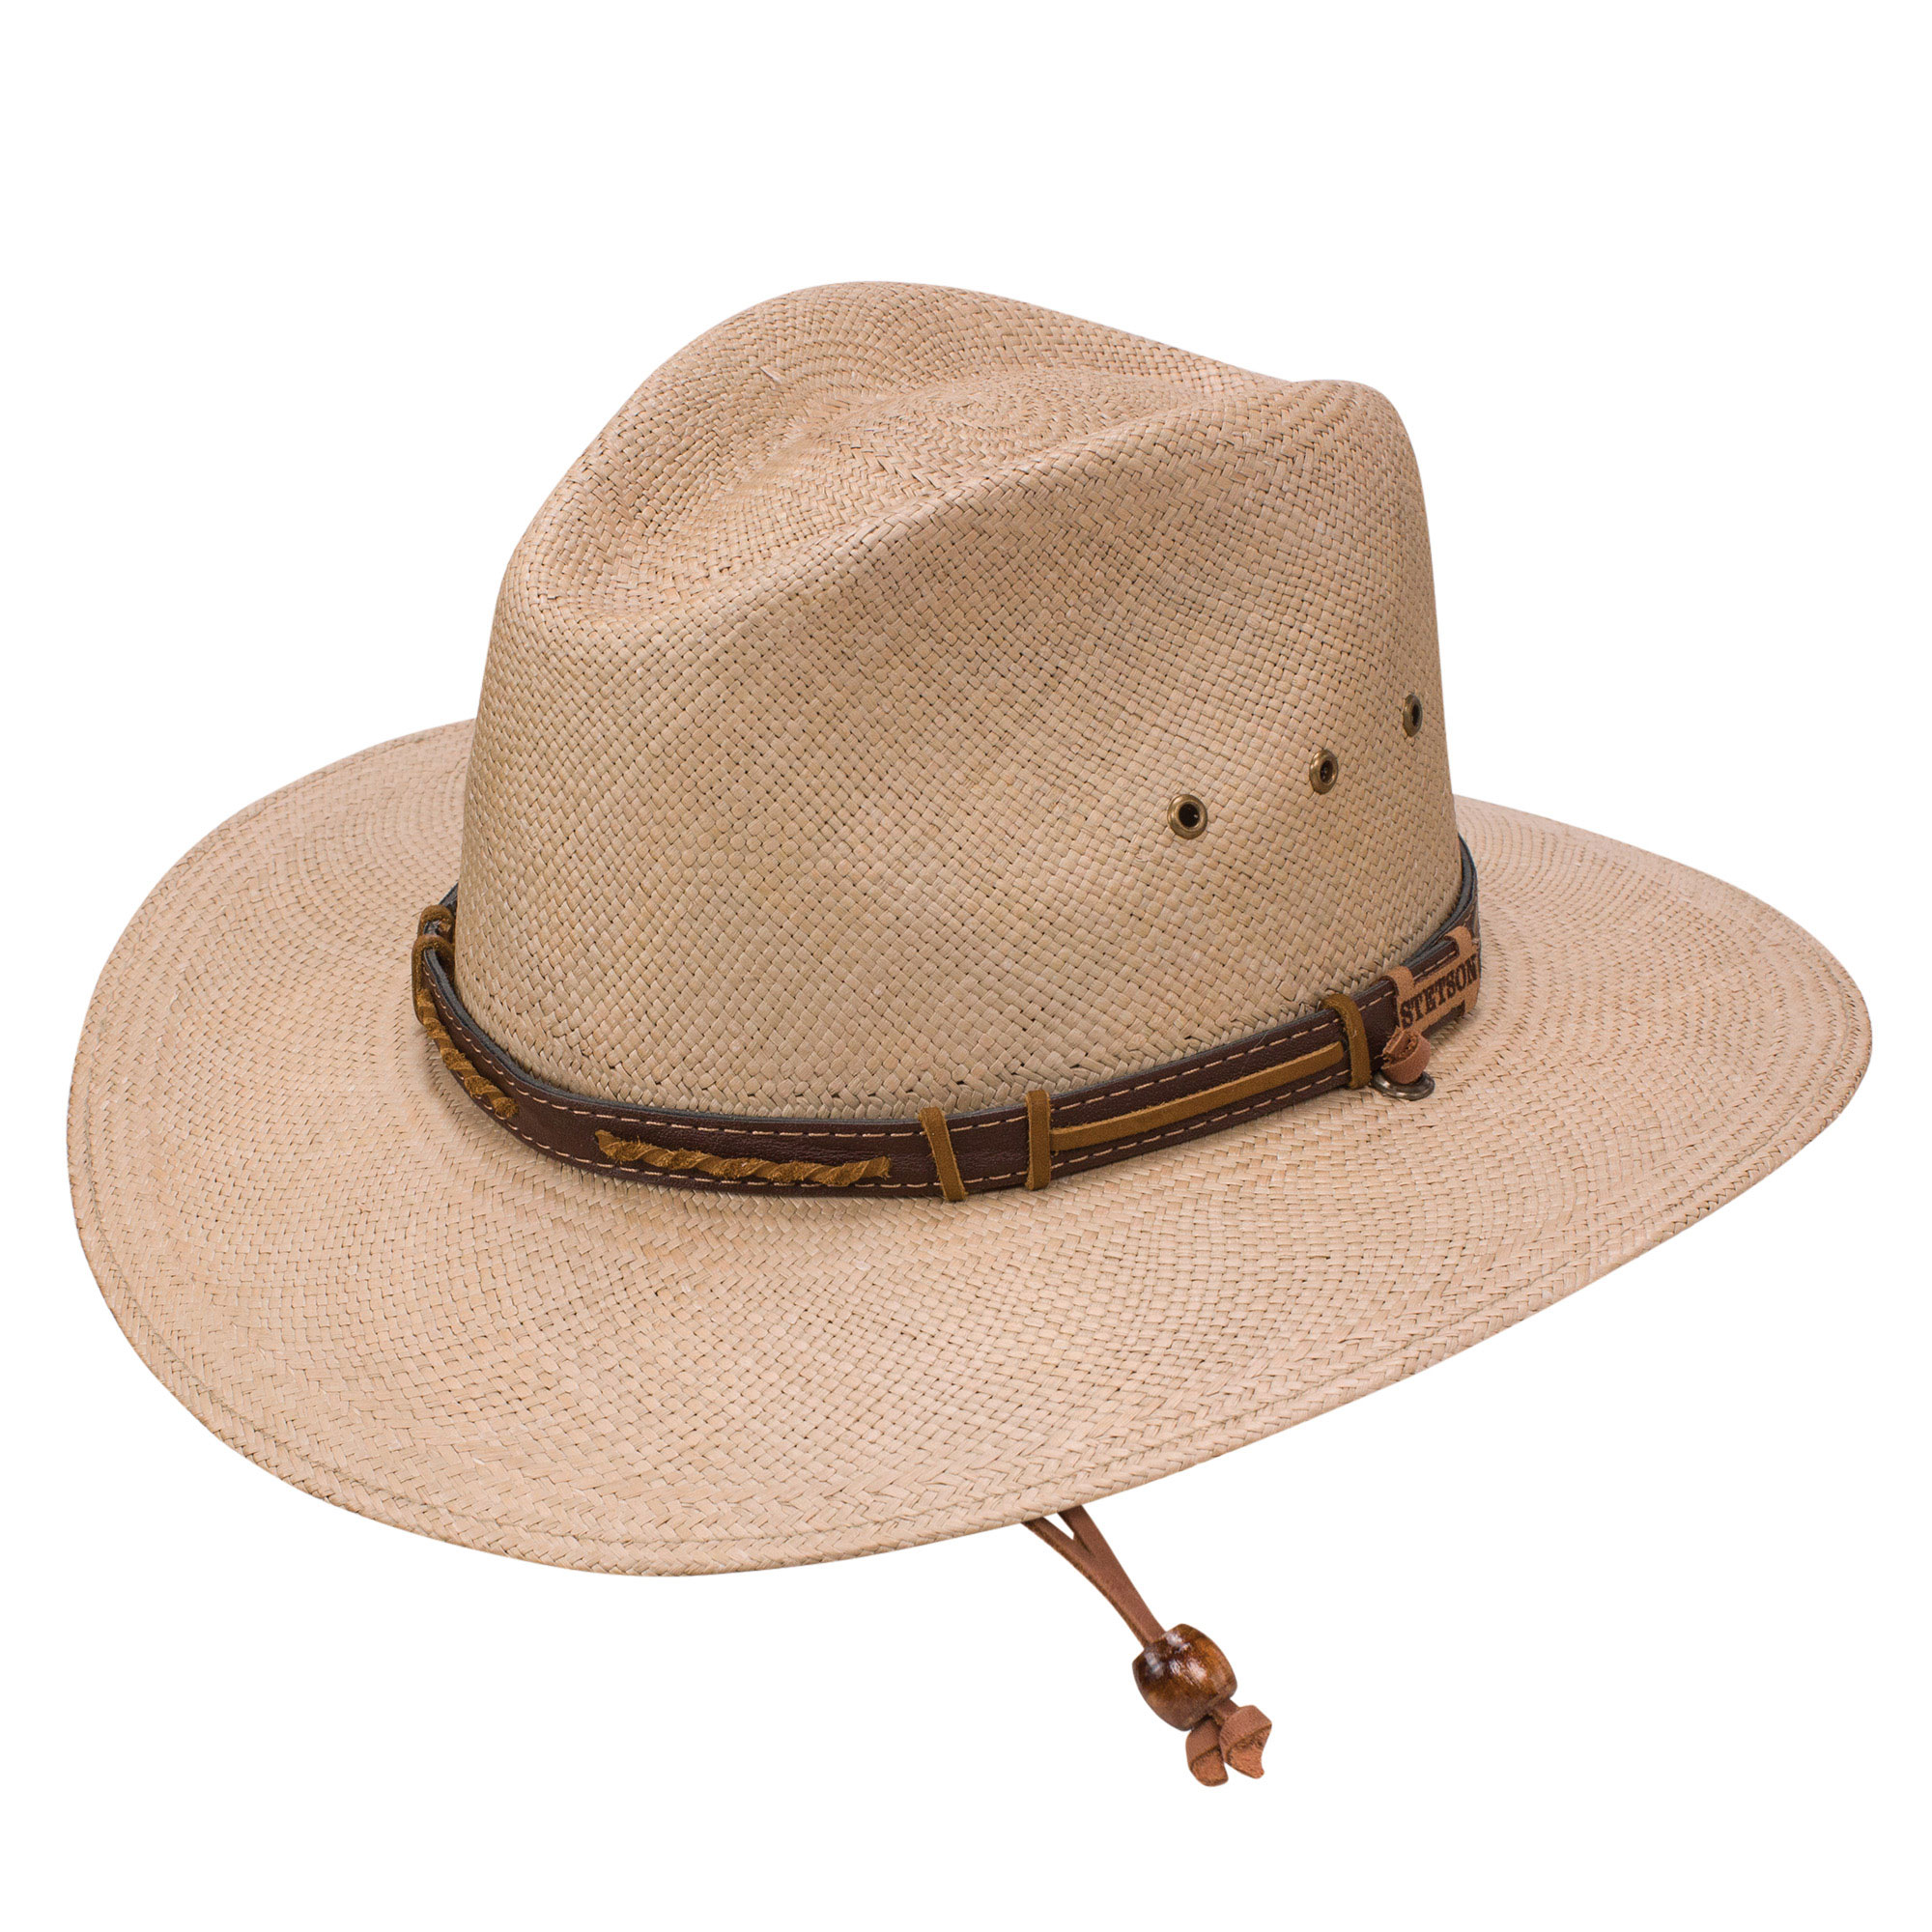 7ca91b5c407a4 Stetson Vance Panama Straw Hat. Tap to expand